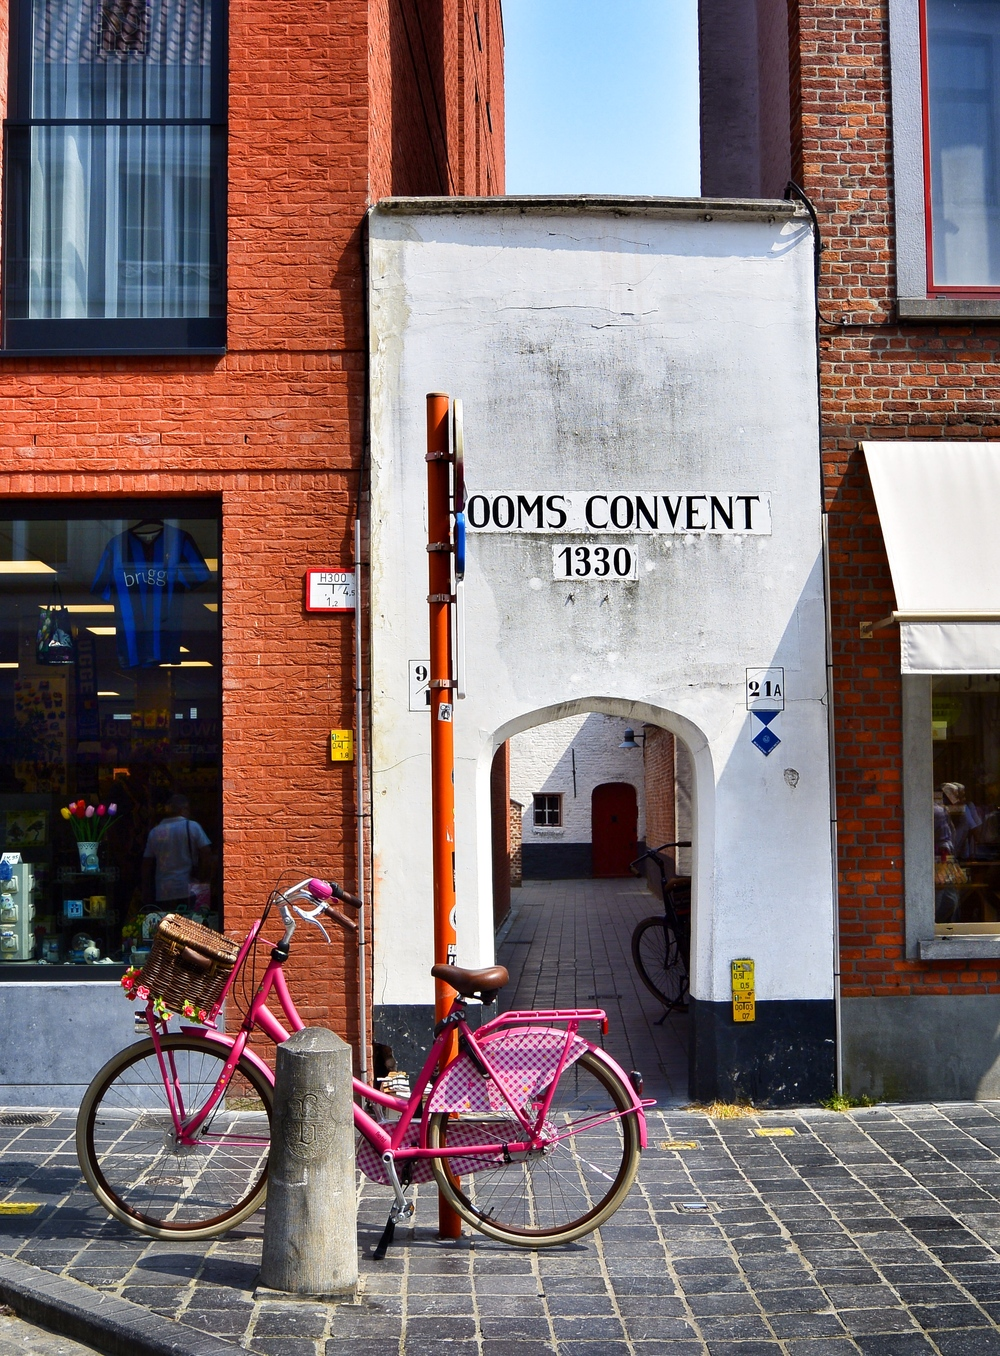 Pink Bicycle and Convent entrance in Bruges